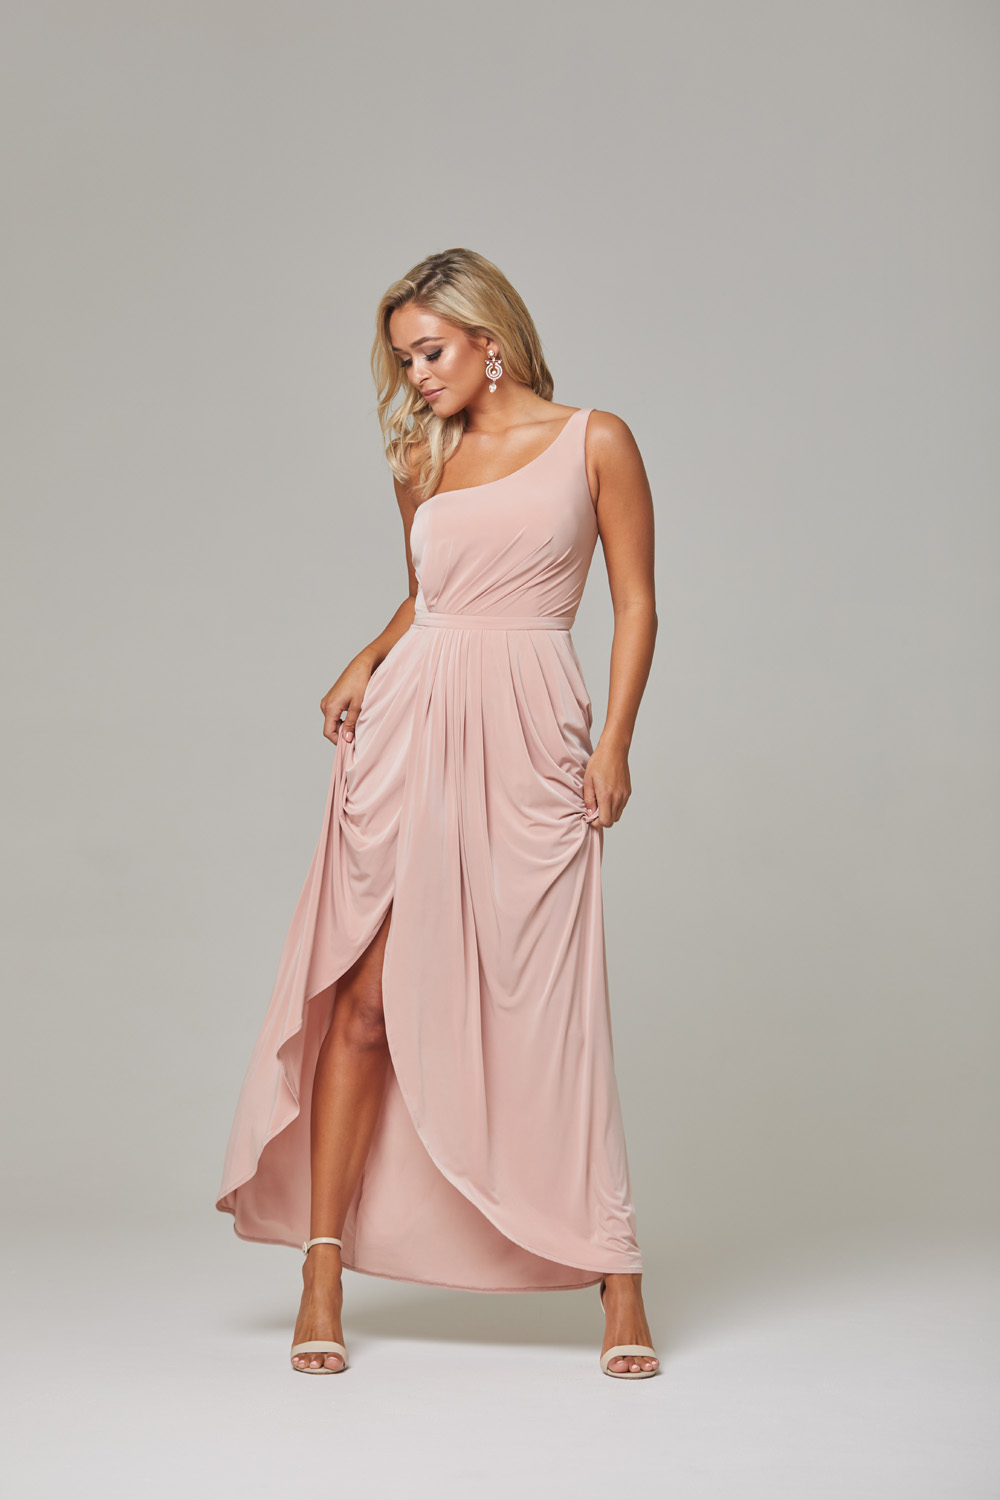 Eloise Bridesmaids Dress side